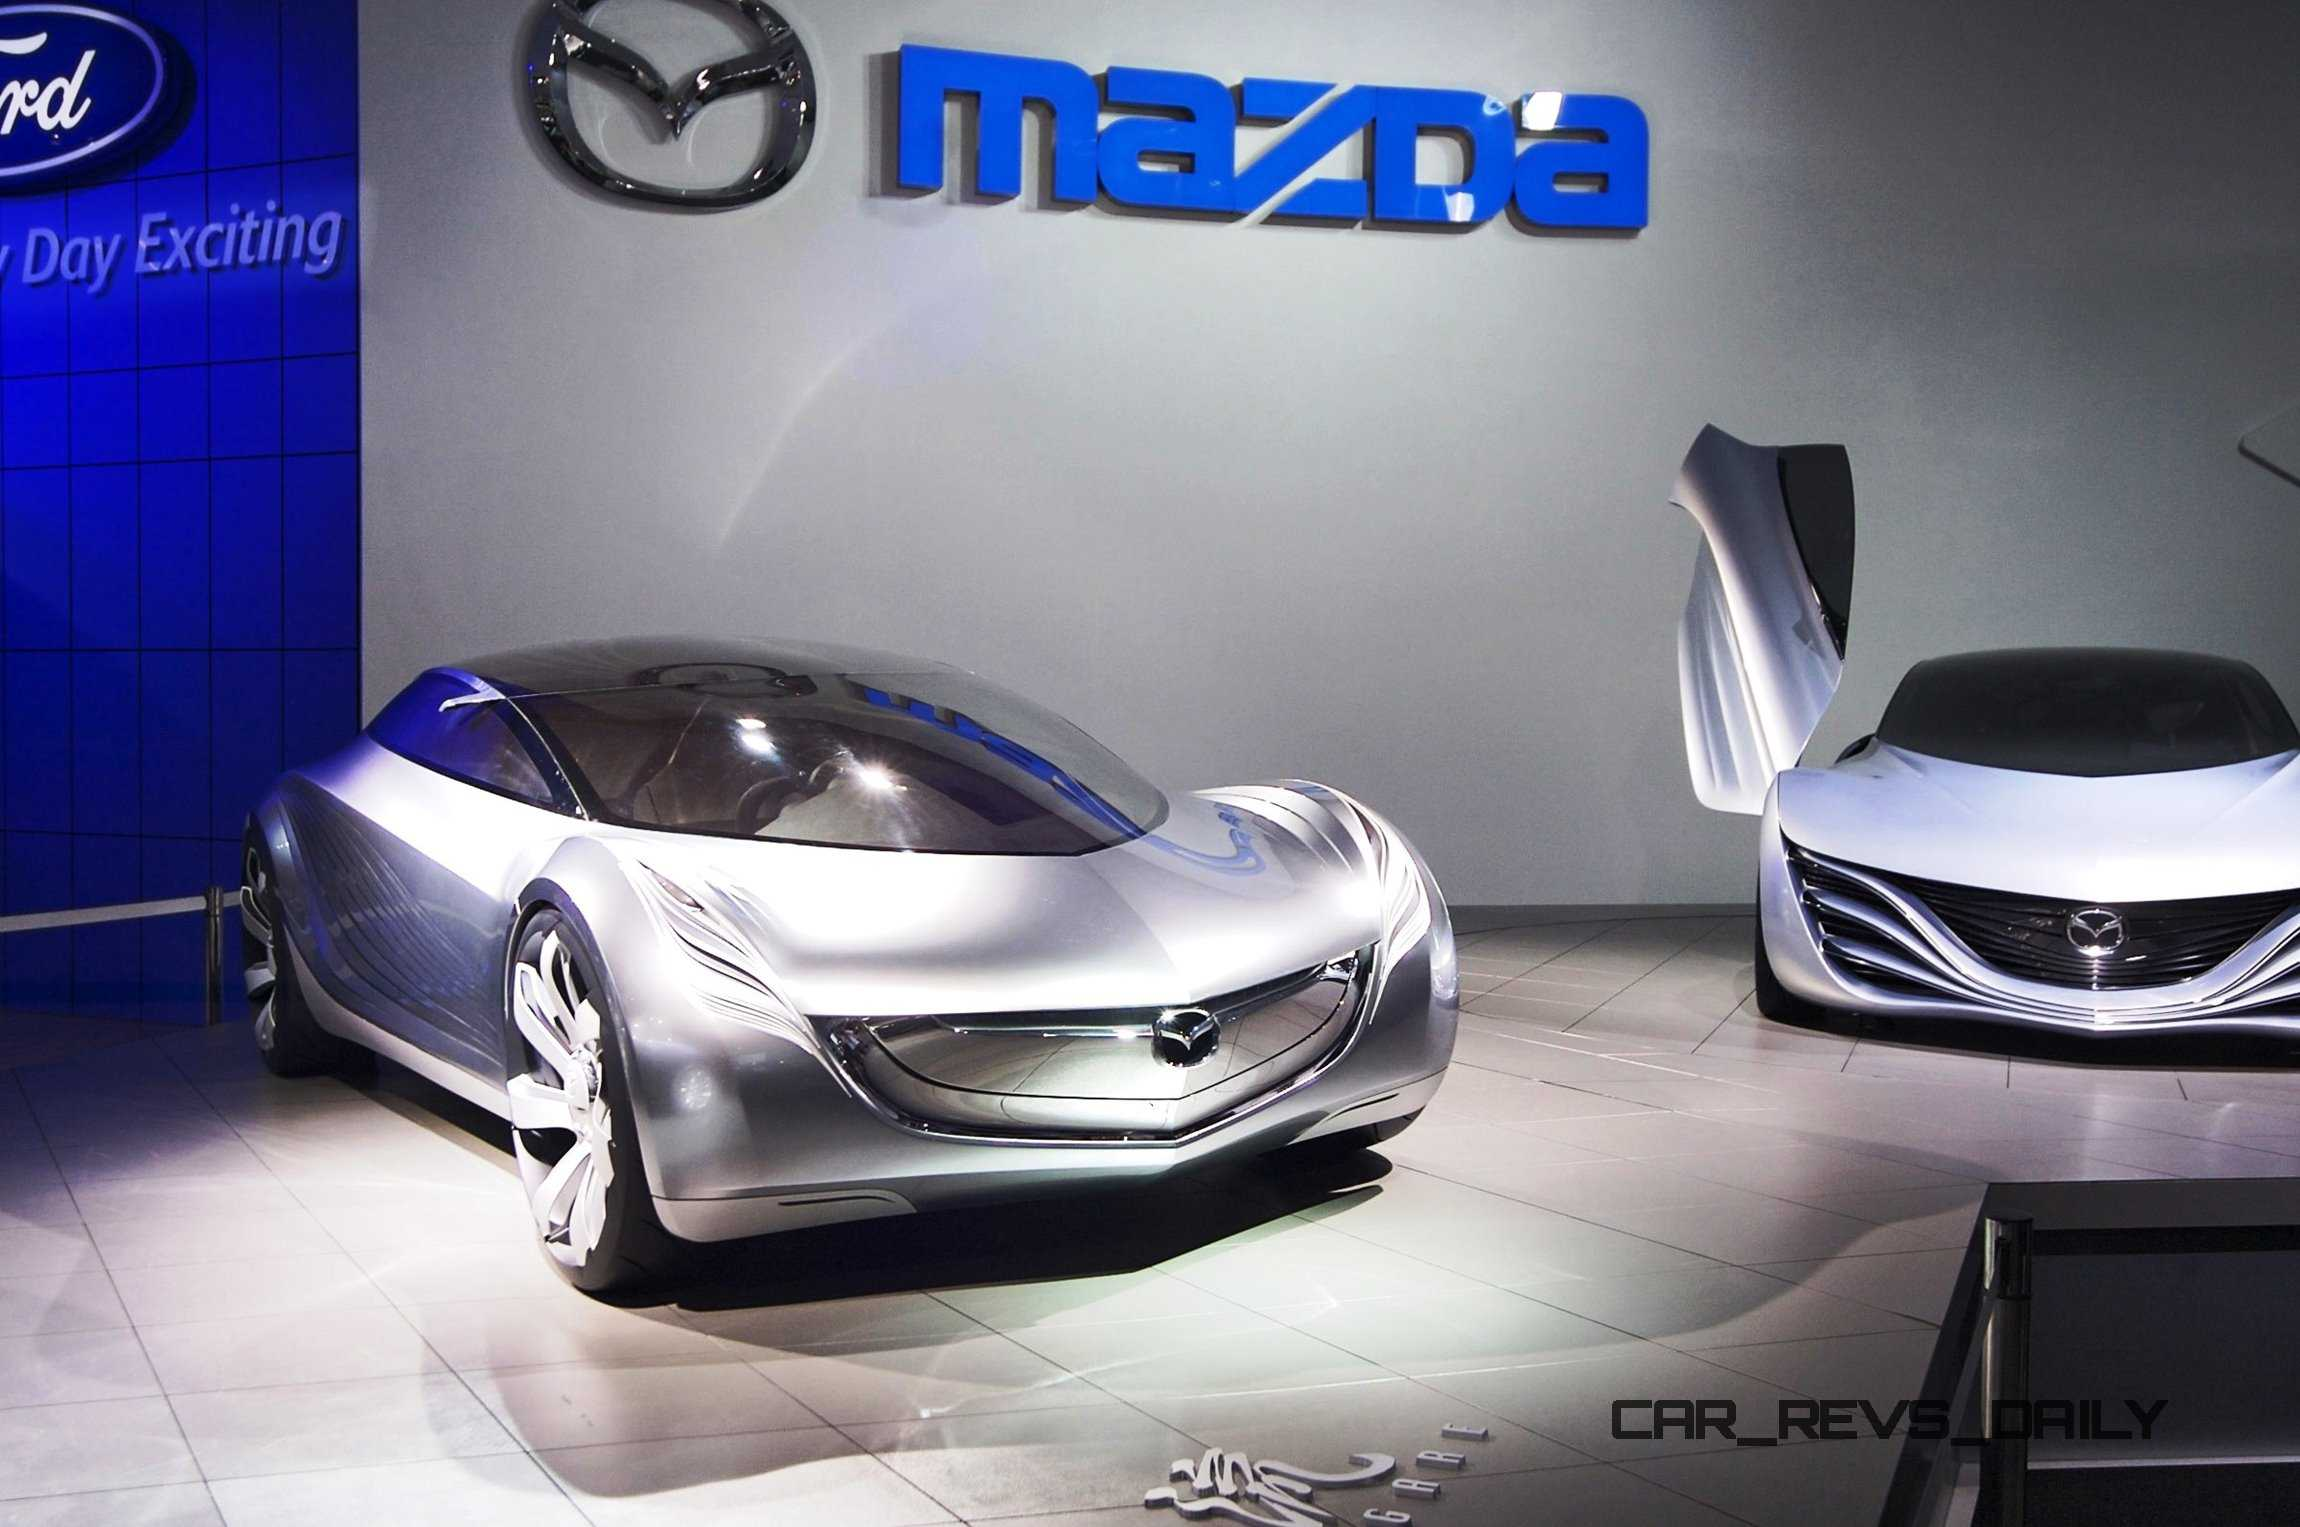 http://www.car-revs-daily.com/wp-content/uploads/2015/03/2007-Mazda-TAIKI-Concept-8.jpg